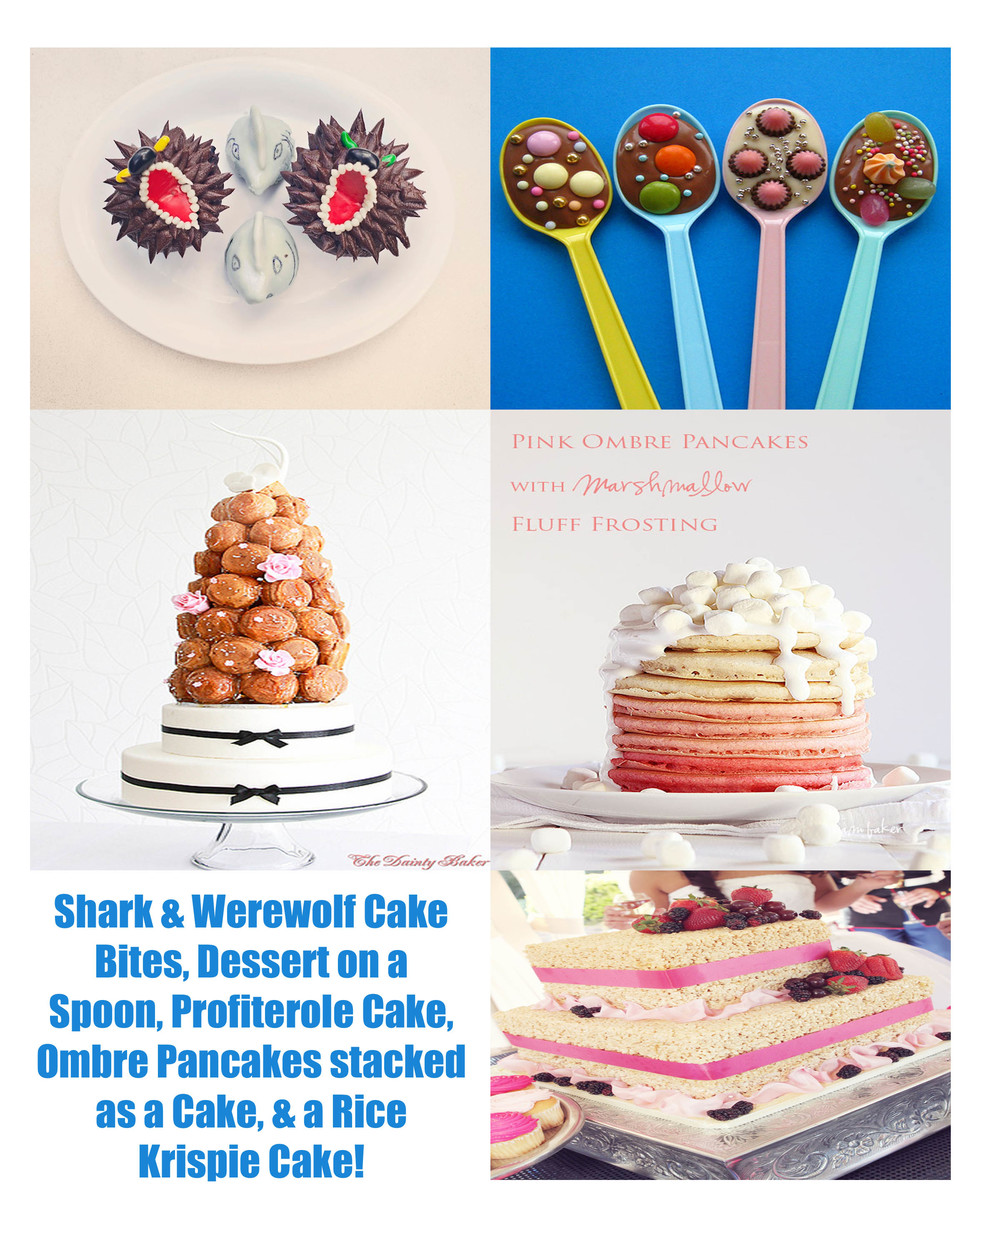 Shark and Werewolf Cake Bites via  When Pigs Fly Events  via  Atlantis Catering   Dessert on a Spoon via  Delicious Delicious   Profiterole Cake via  The Dainty Baker   Ombre Pancake Cake via  I am Baker   Rice Krispie Cake via  When Pigs Fly Events